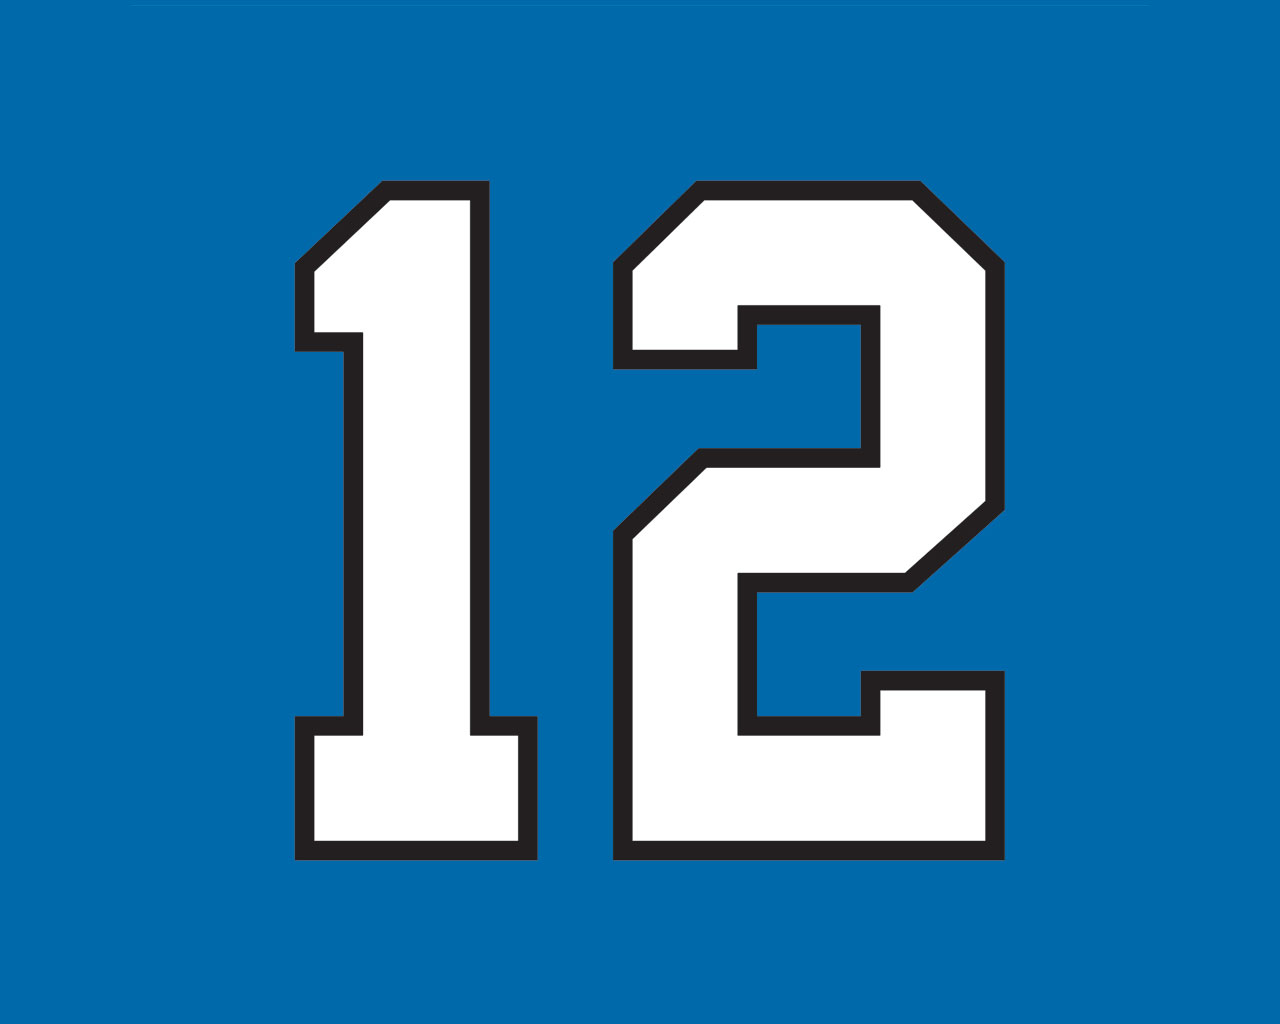 Seahawks 12th Man Png Free Seahawks 12th Man Png Transparent Images 19065 Pngio